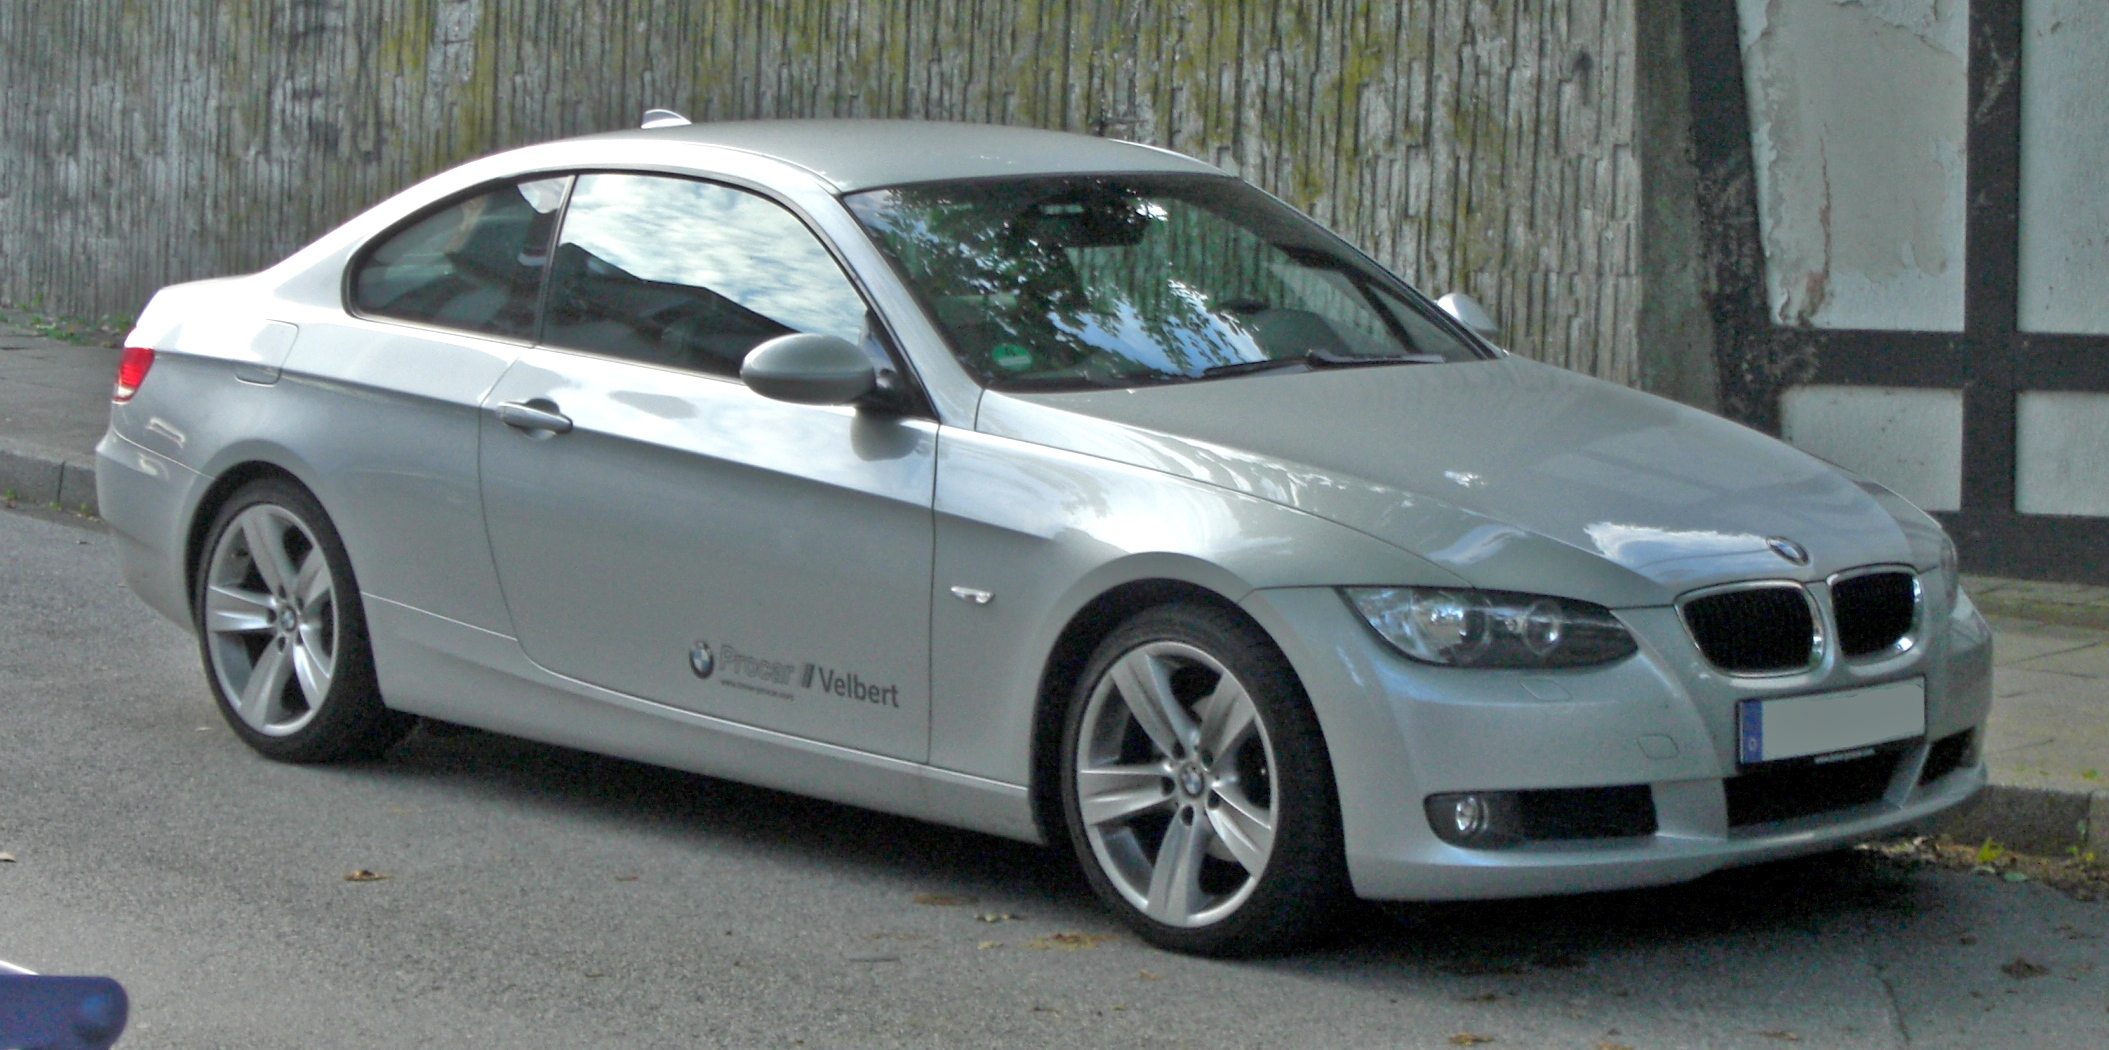 BMW 3er Coup%C3%A9 E92 front - 2011 Bmw 335i Coup